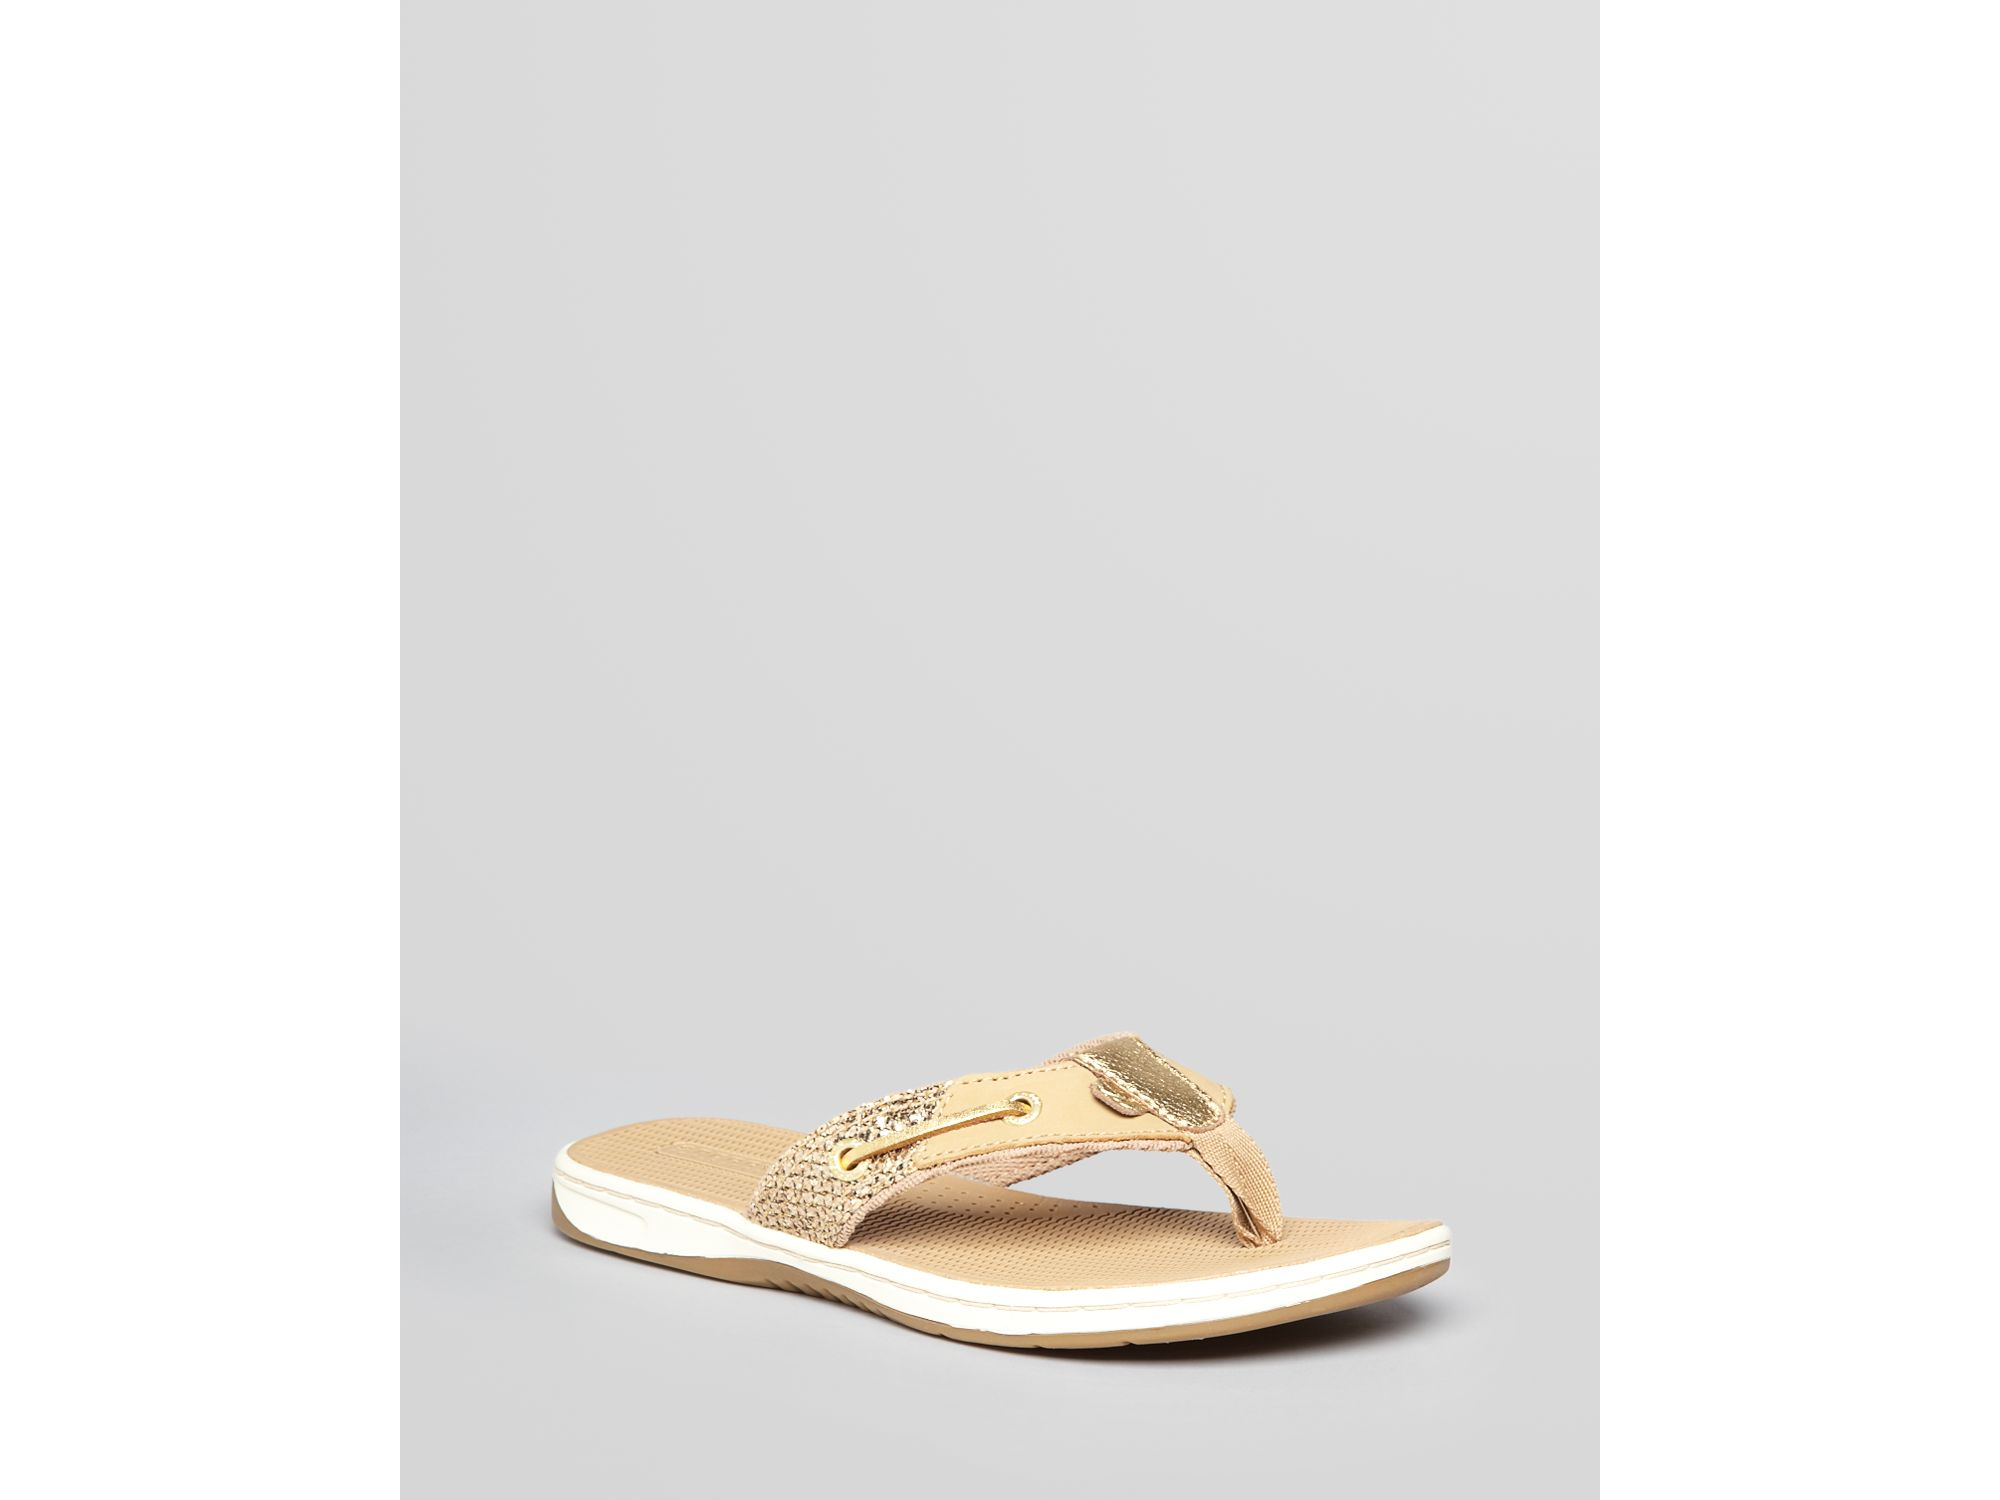 Sperry Top Sider Thong Sandals Seafish Flip Flop In Gold